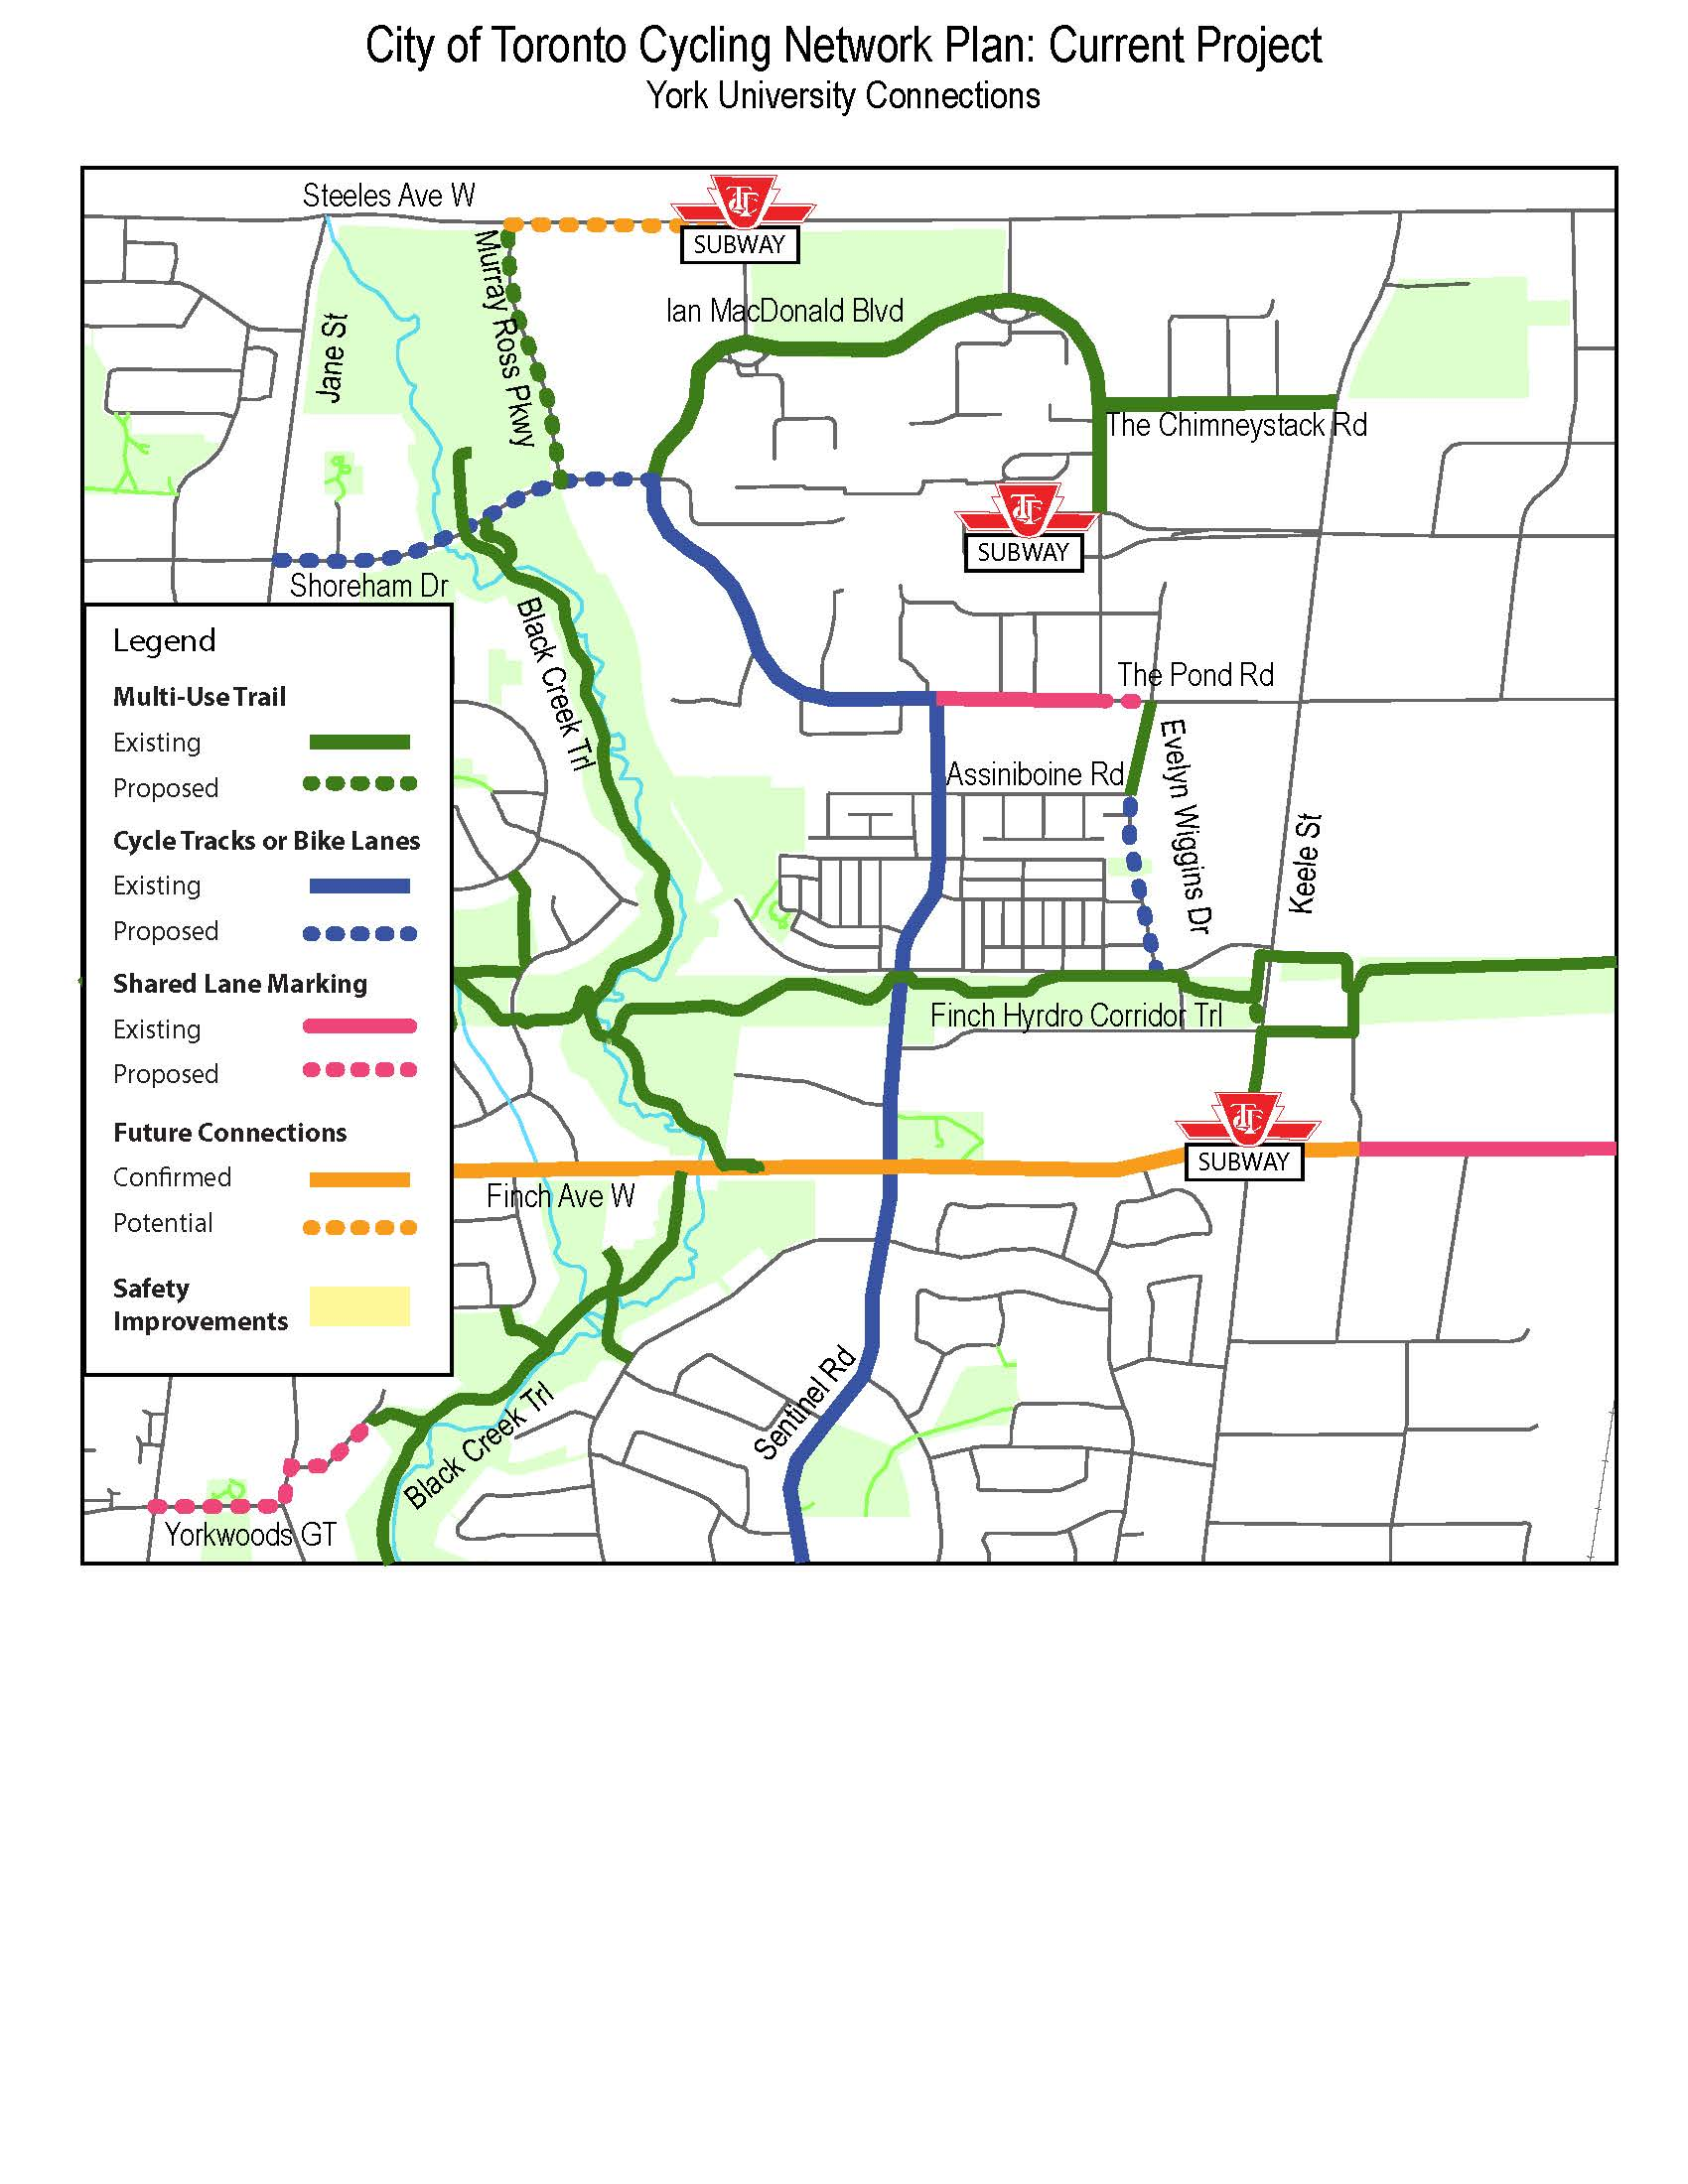 This is a map of the York University Cycling Connections. It shows existing multi-use trails on Ian MacDonald Boulevard, Chimneystack Road, Black Creek Trail and Finch Hydro Corridor. It shows existing bike lanes and cycle tracks on Pond Road and Sentinel Road, and it shows existing shared lanes on the Pond Road and Finch Avenue West. It also shows the following proposed bikeways that would connect to existing bikeways: a multi-use trail on Murray Ross Parkway from Steeles Avenue to Shoreham Drive; bike lanes on Shoreham Drive from Jane to Pond Road; bike lanes on Evelyn Wiggins Drive; and shared lanes on Yorkwoods Gate.